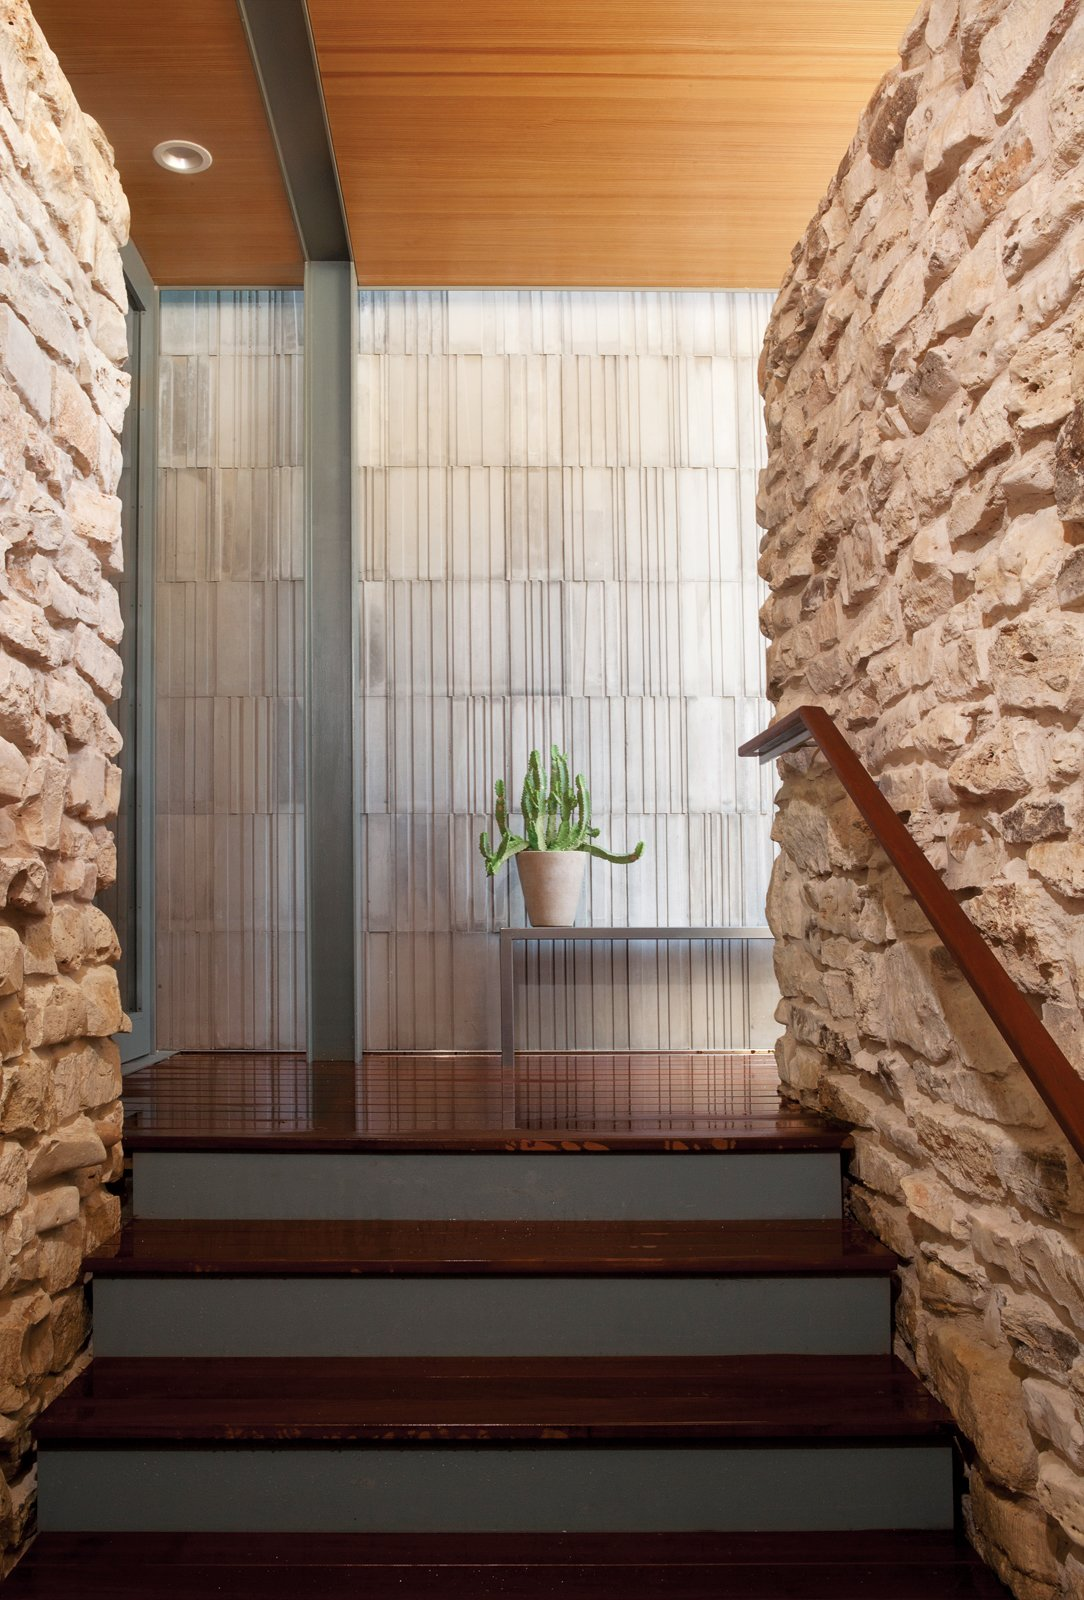 Staircase, Wood Tread, and Wood Railing A striated concrete wall designed by Pollen Architecture & Design contrasts with the rough limestone rock of the home's existing stair column.  Limestone Designs in Modern Homes by Zachary Edelson